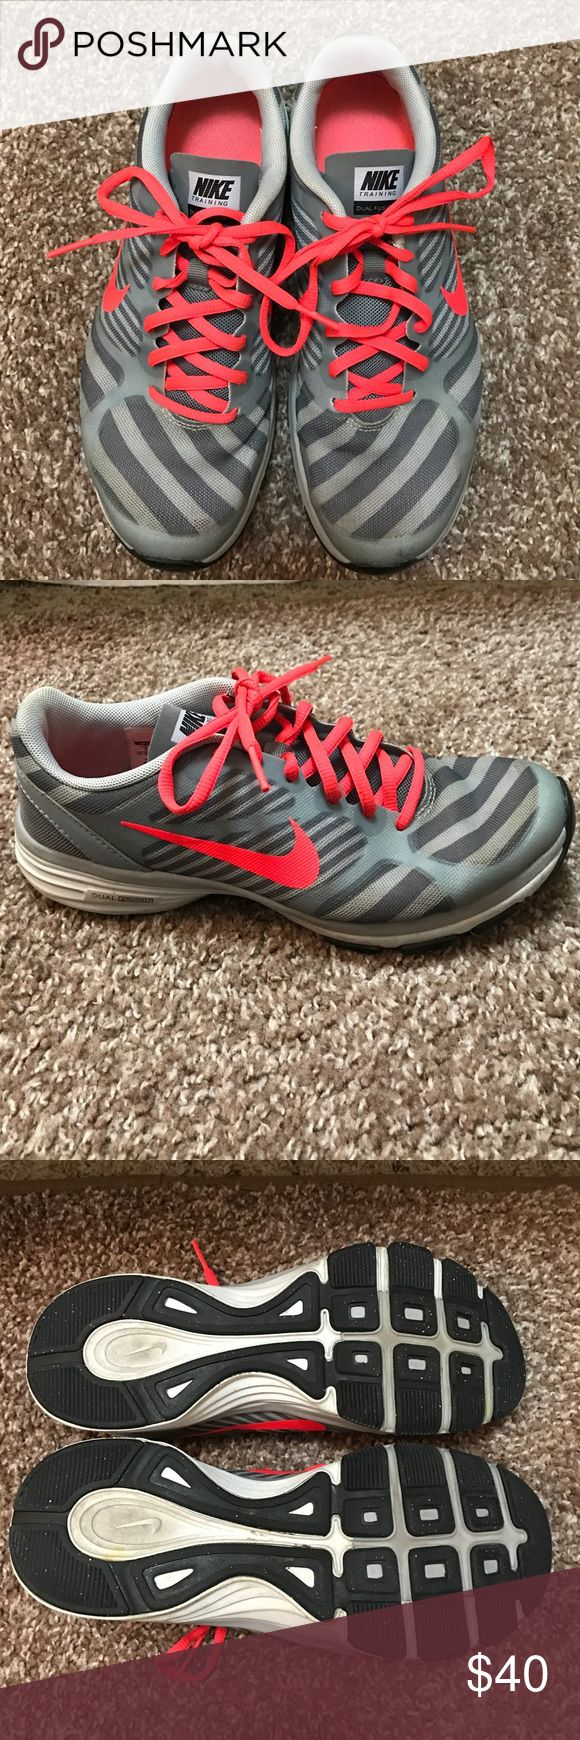 Nike dual fusion training shoes Light and dark grey stripes with neon orange accents. Size 7, only worn a few times, no rips or stains. Nike Shoes Athletic Shoes